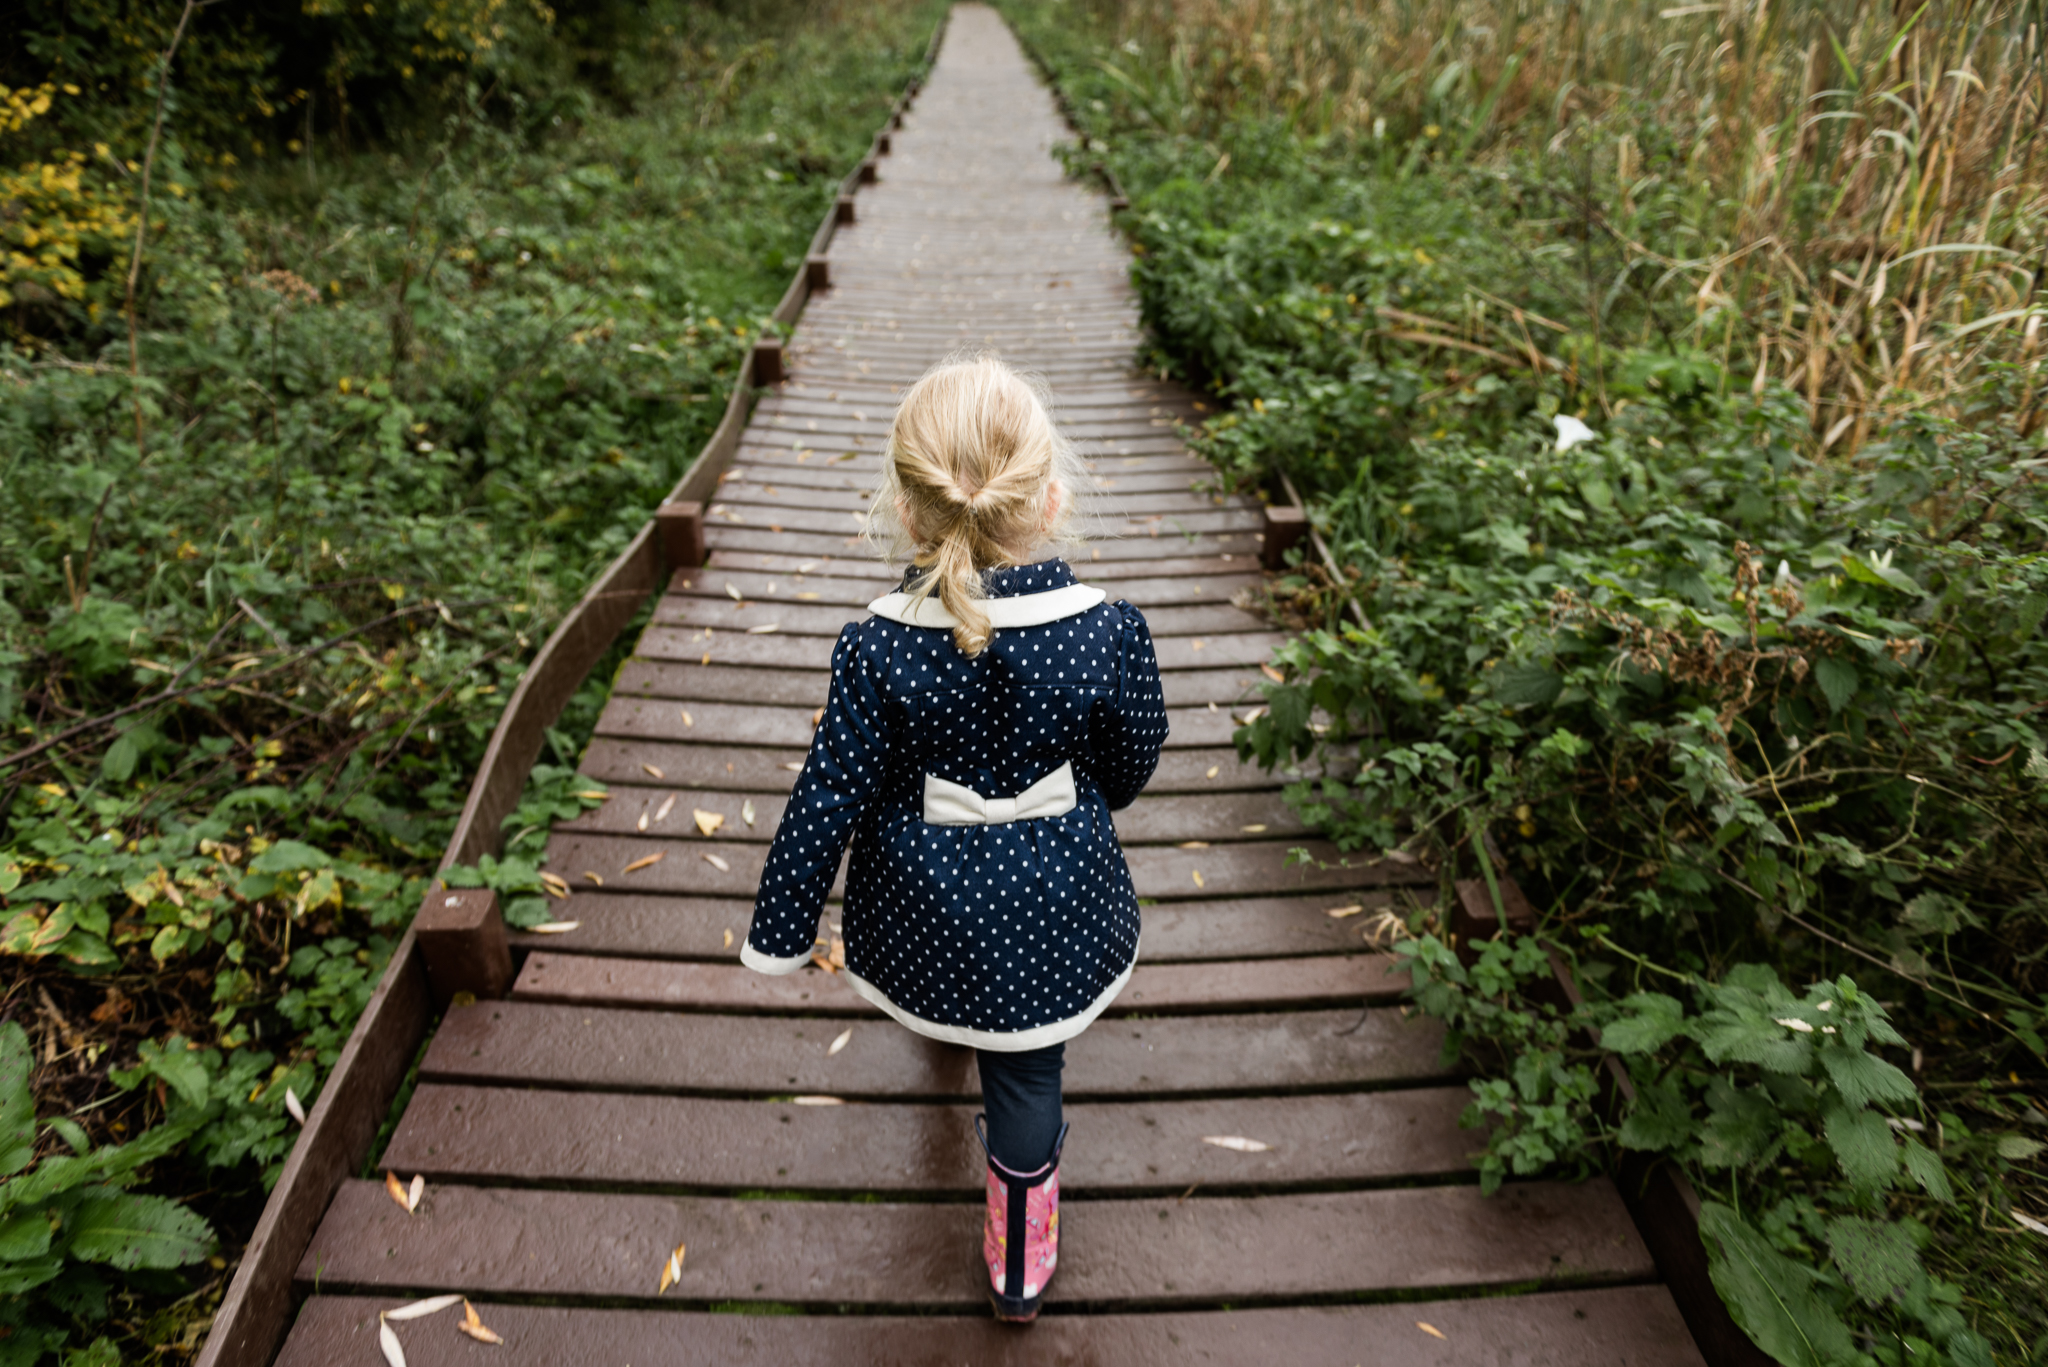 Staffordshire Documentary Family Photography Autumn Lifestyle Fall Leaves - Jenny Harper-12.jpg